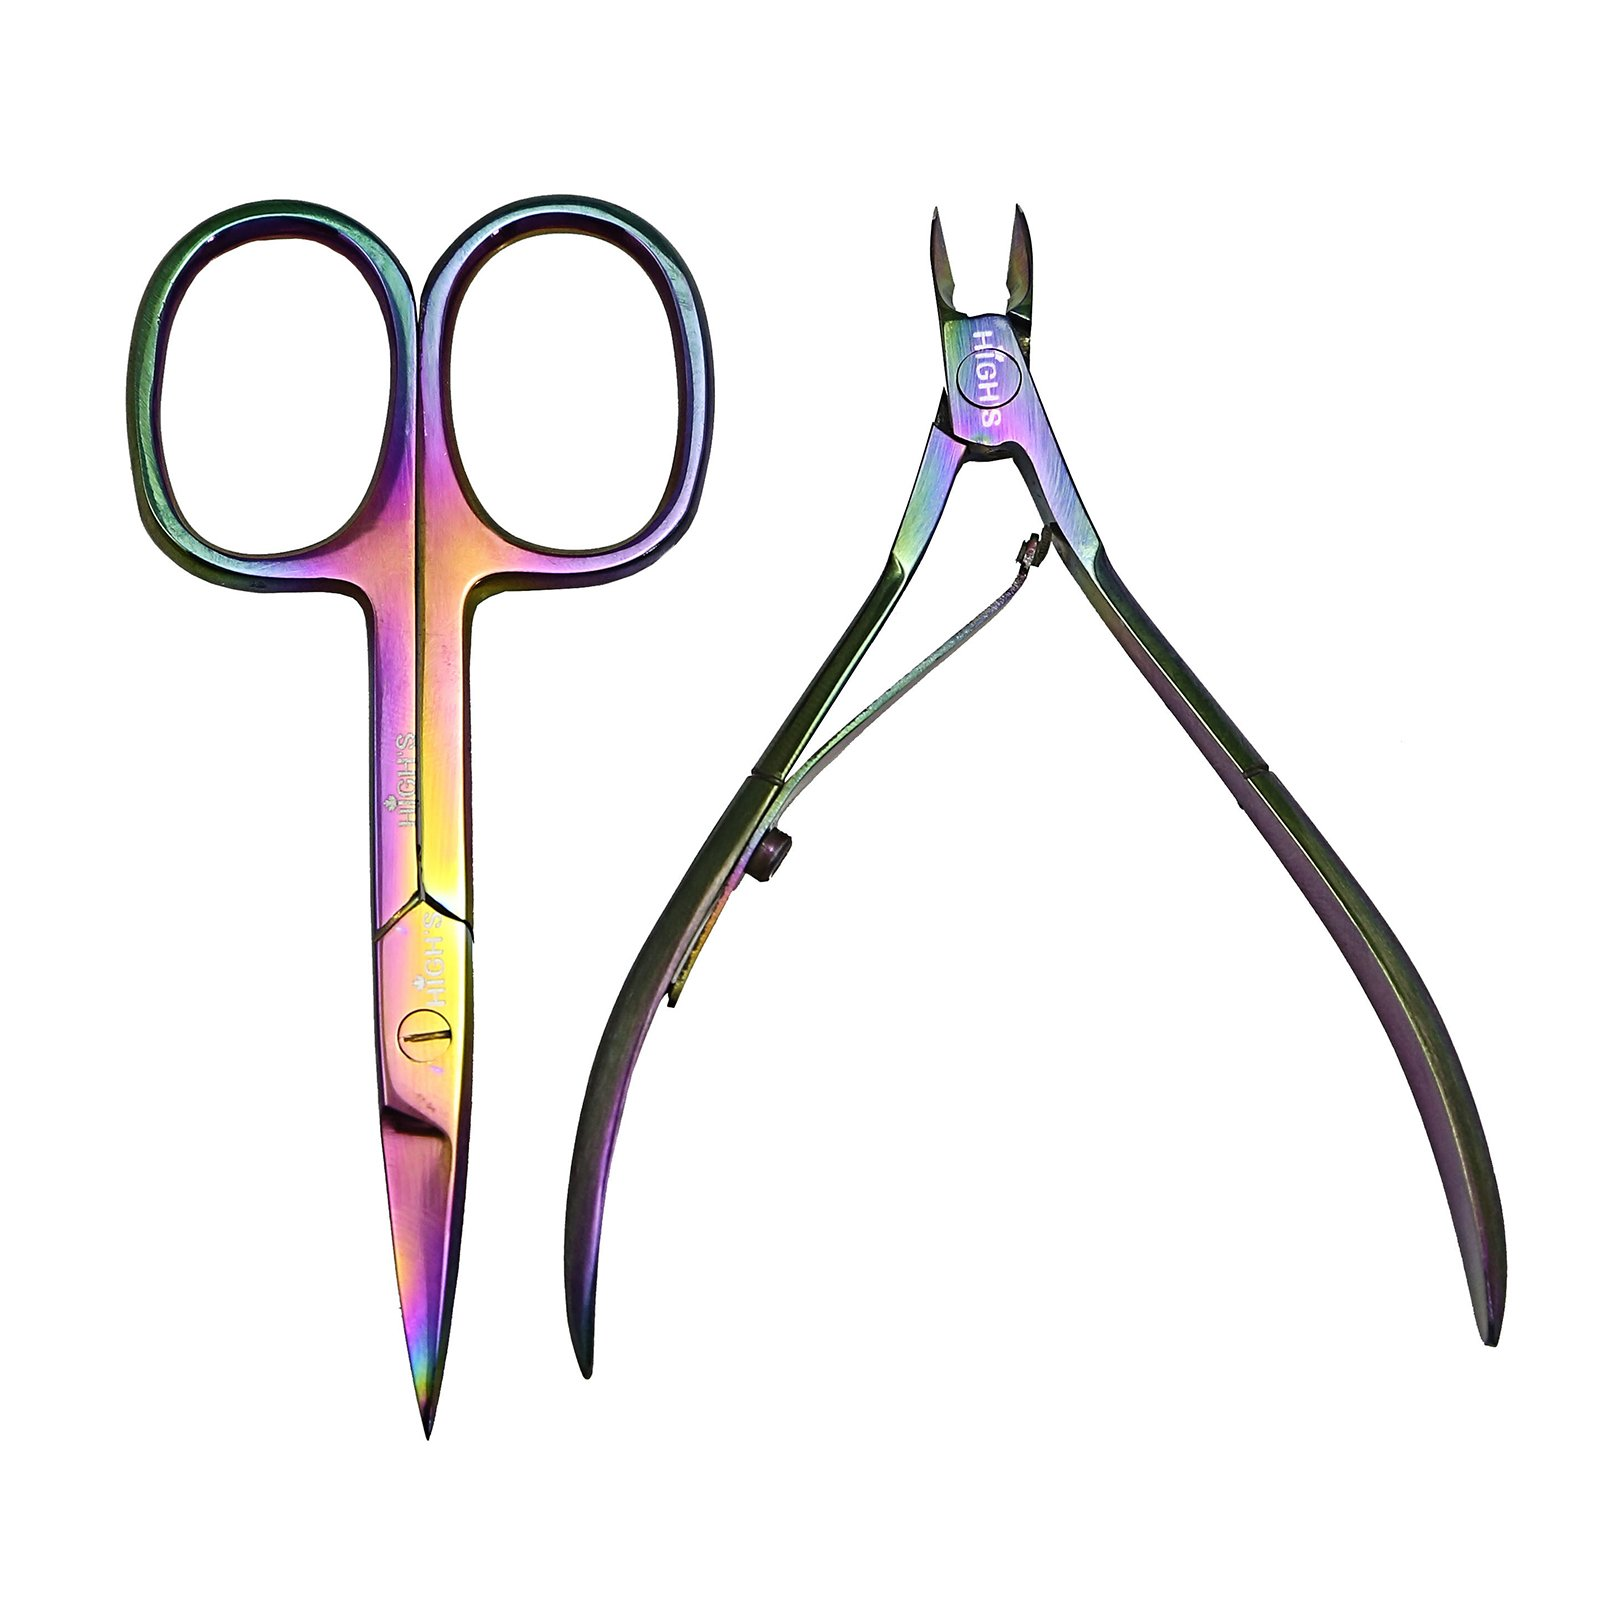 HIGH'S Rainbow Colorful Stainless Steel Professional Mini Manicure Kit Cuticle Nipper and Nail Scissors Set